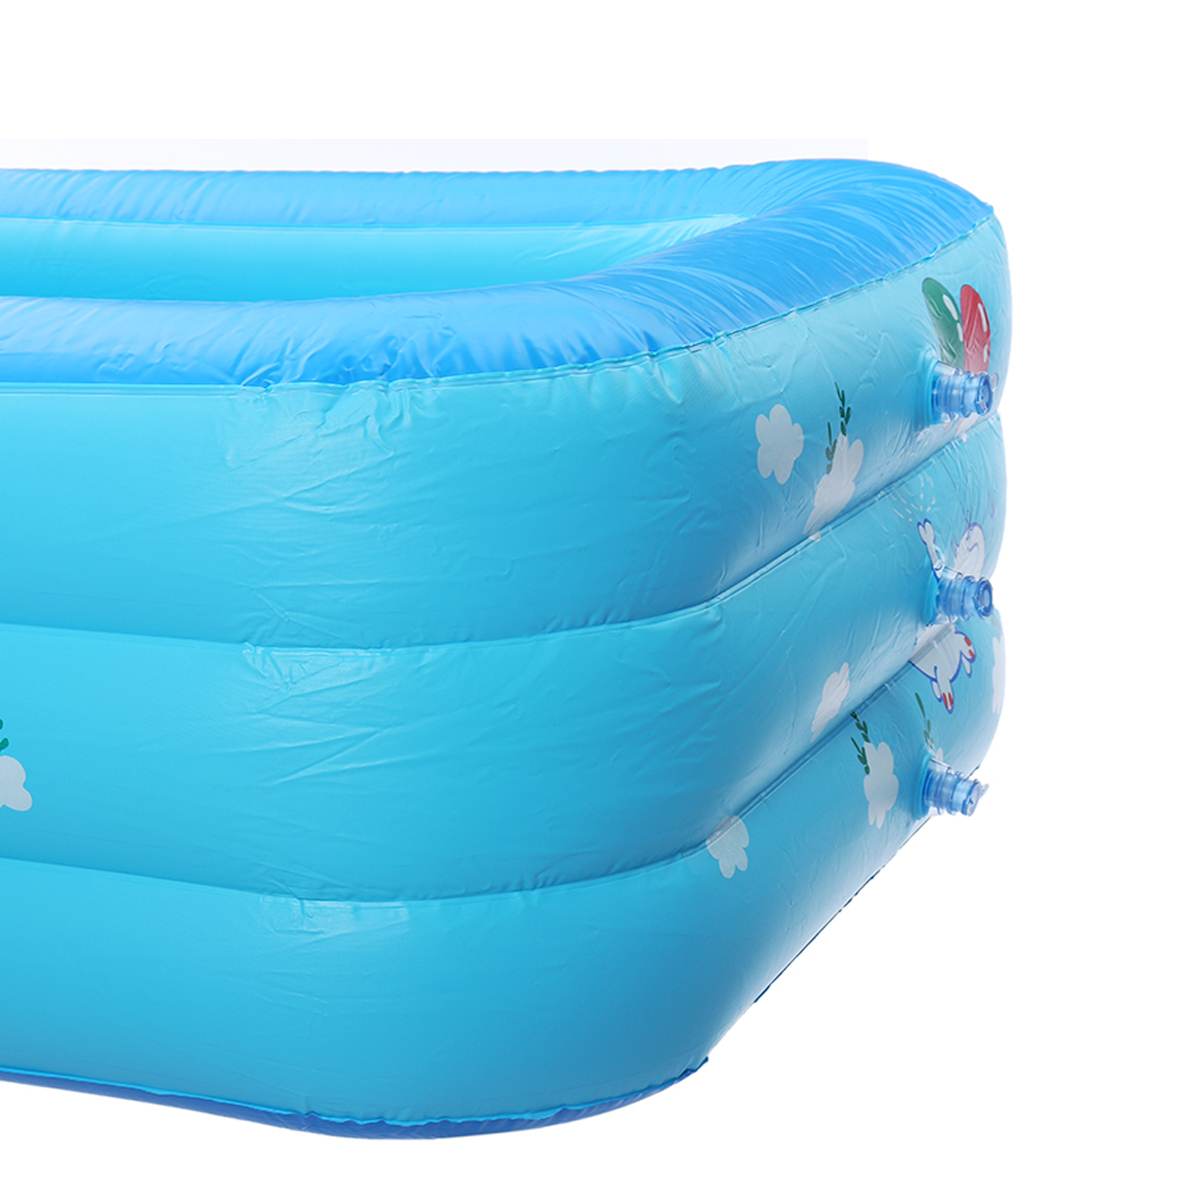 130CM/150CM Inflatable Swimming Pool Outdoor Summer Family Bathing Pool Kids Fun Play Water Pool